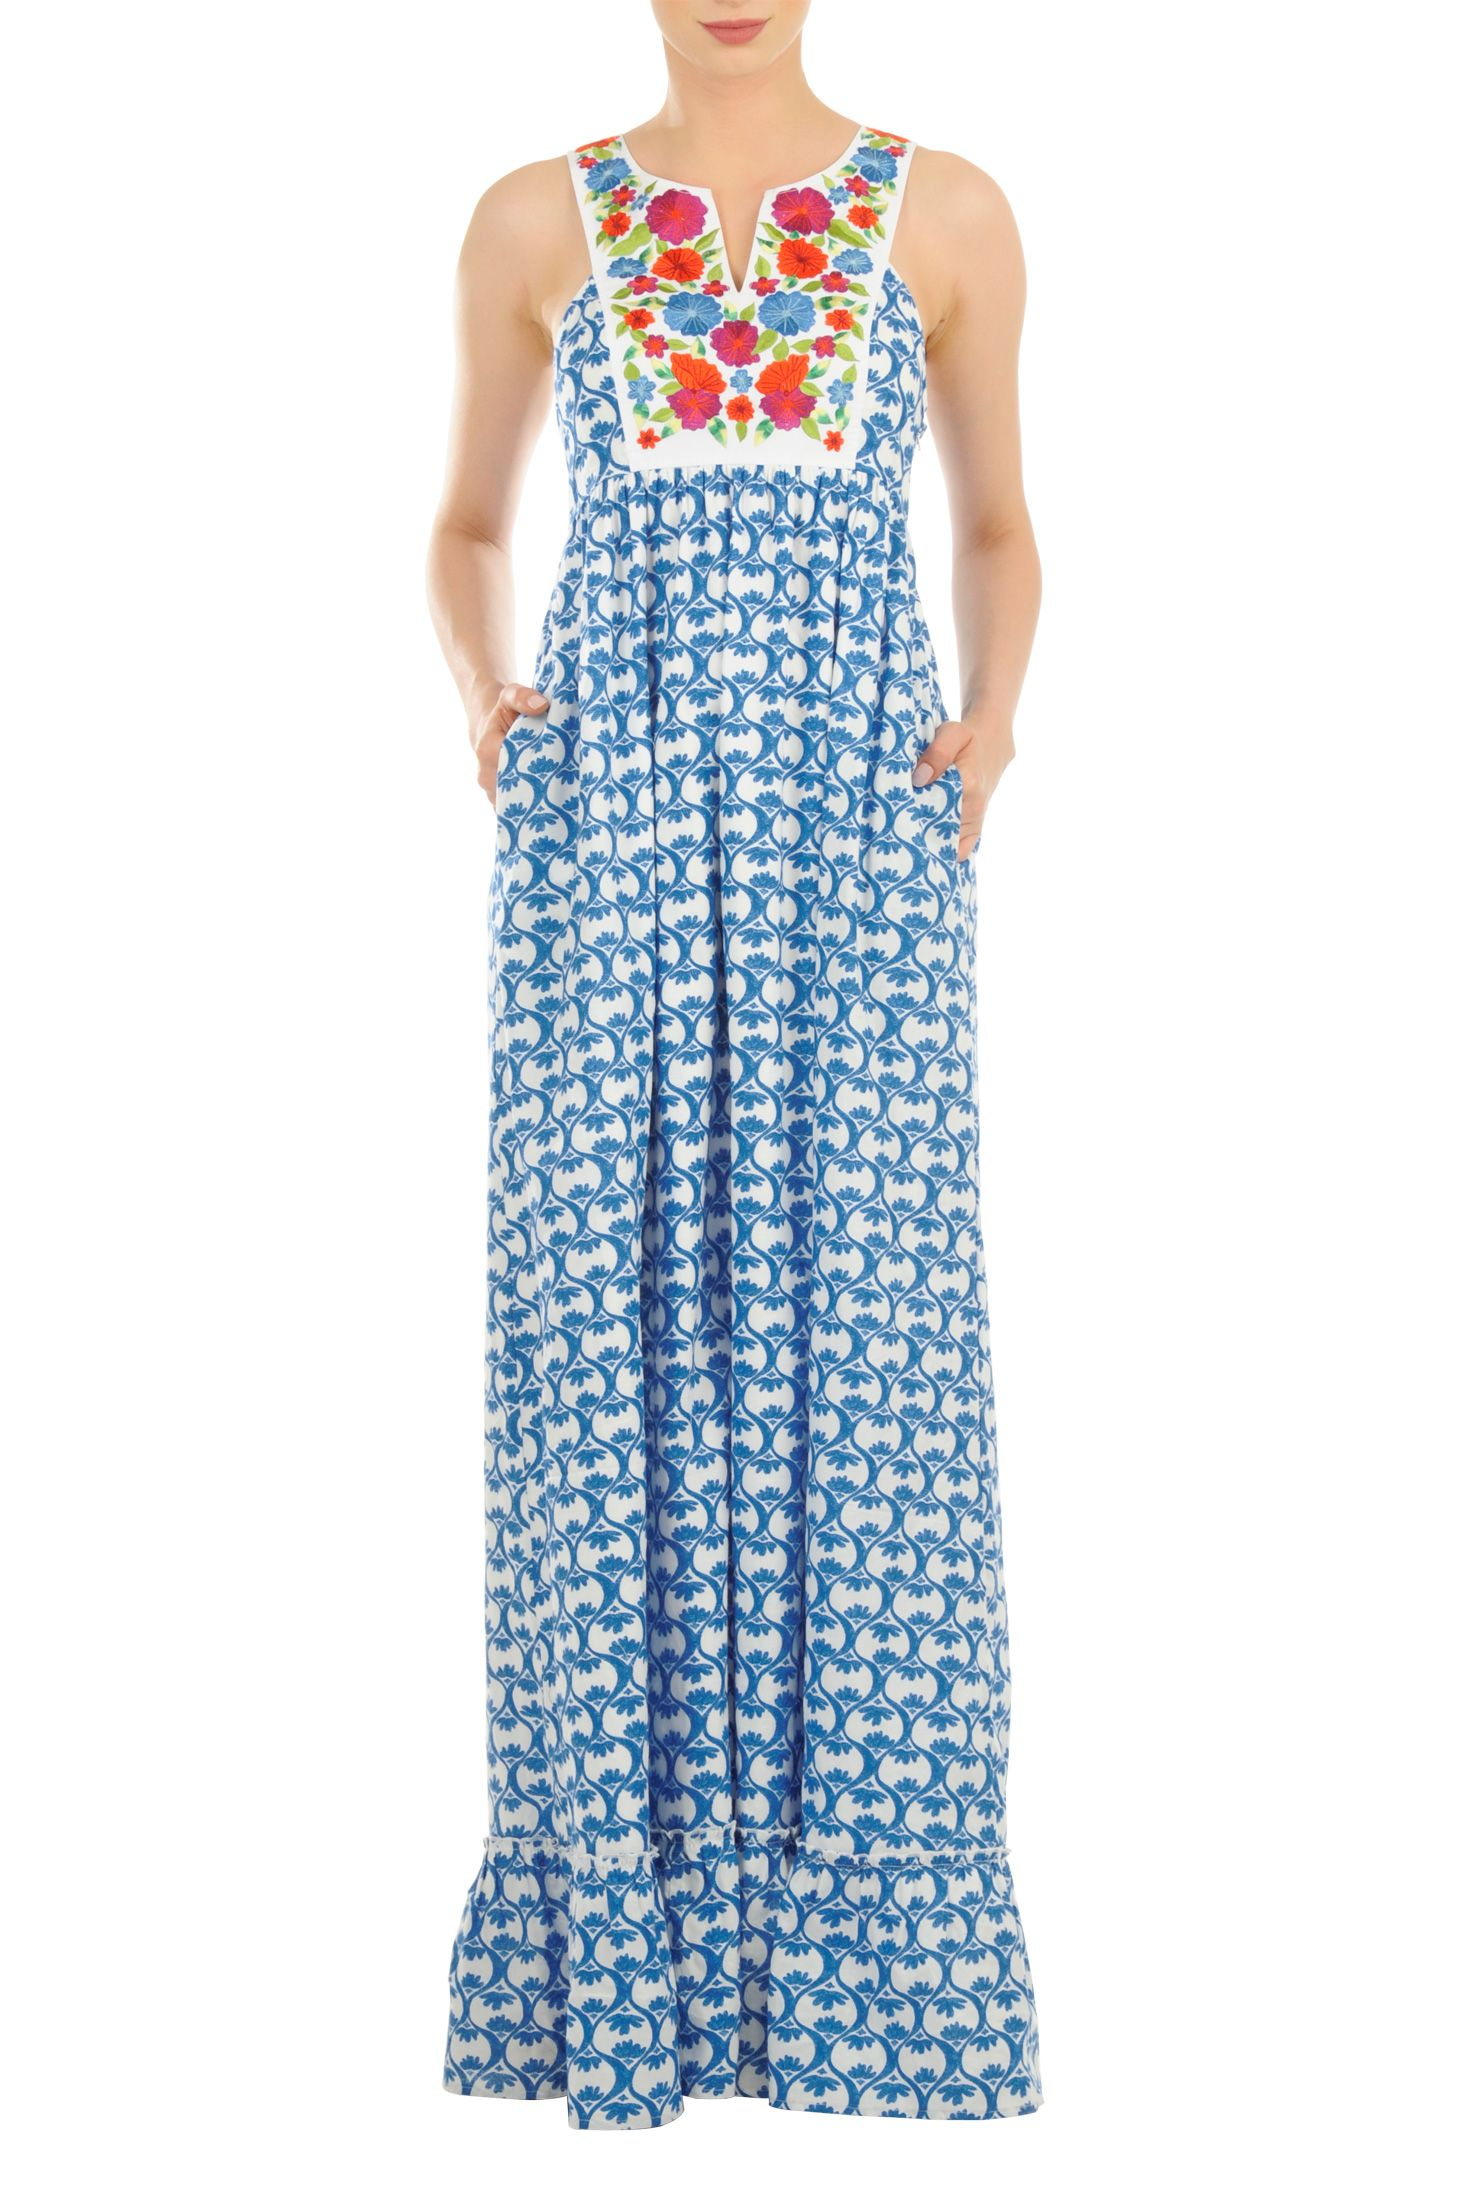 Cotton Print Maxi Dresses, Floral Embellished Bib Dresses Womens ...